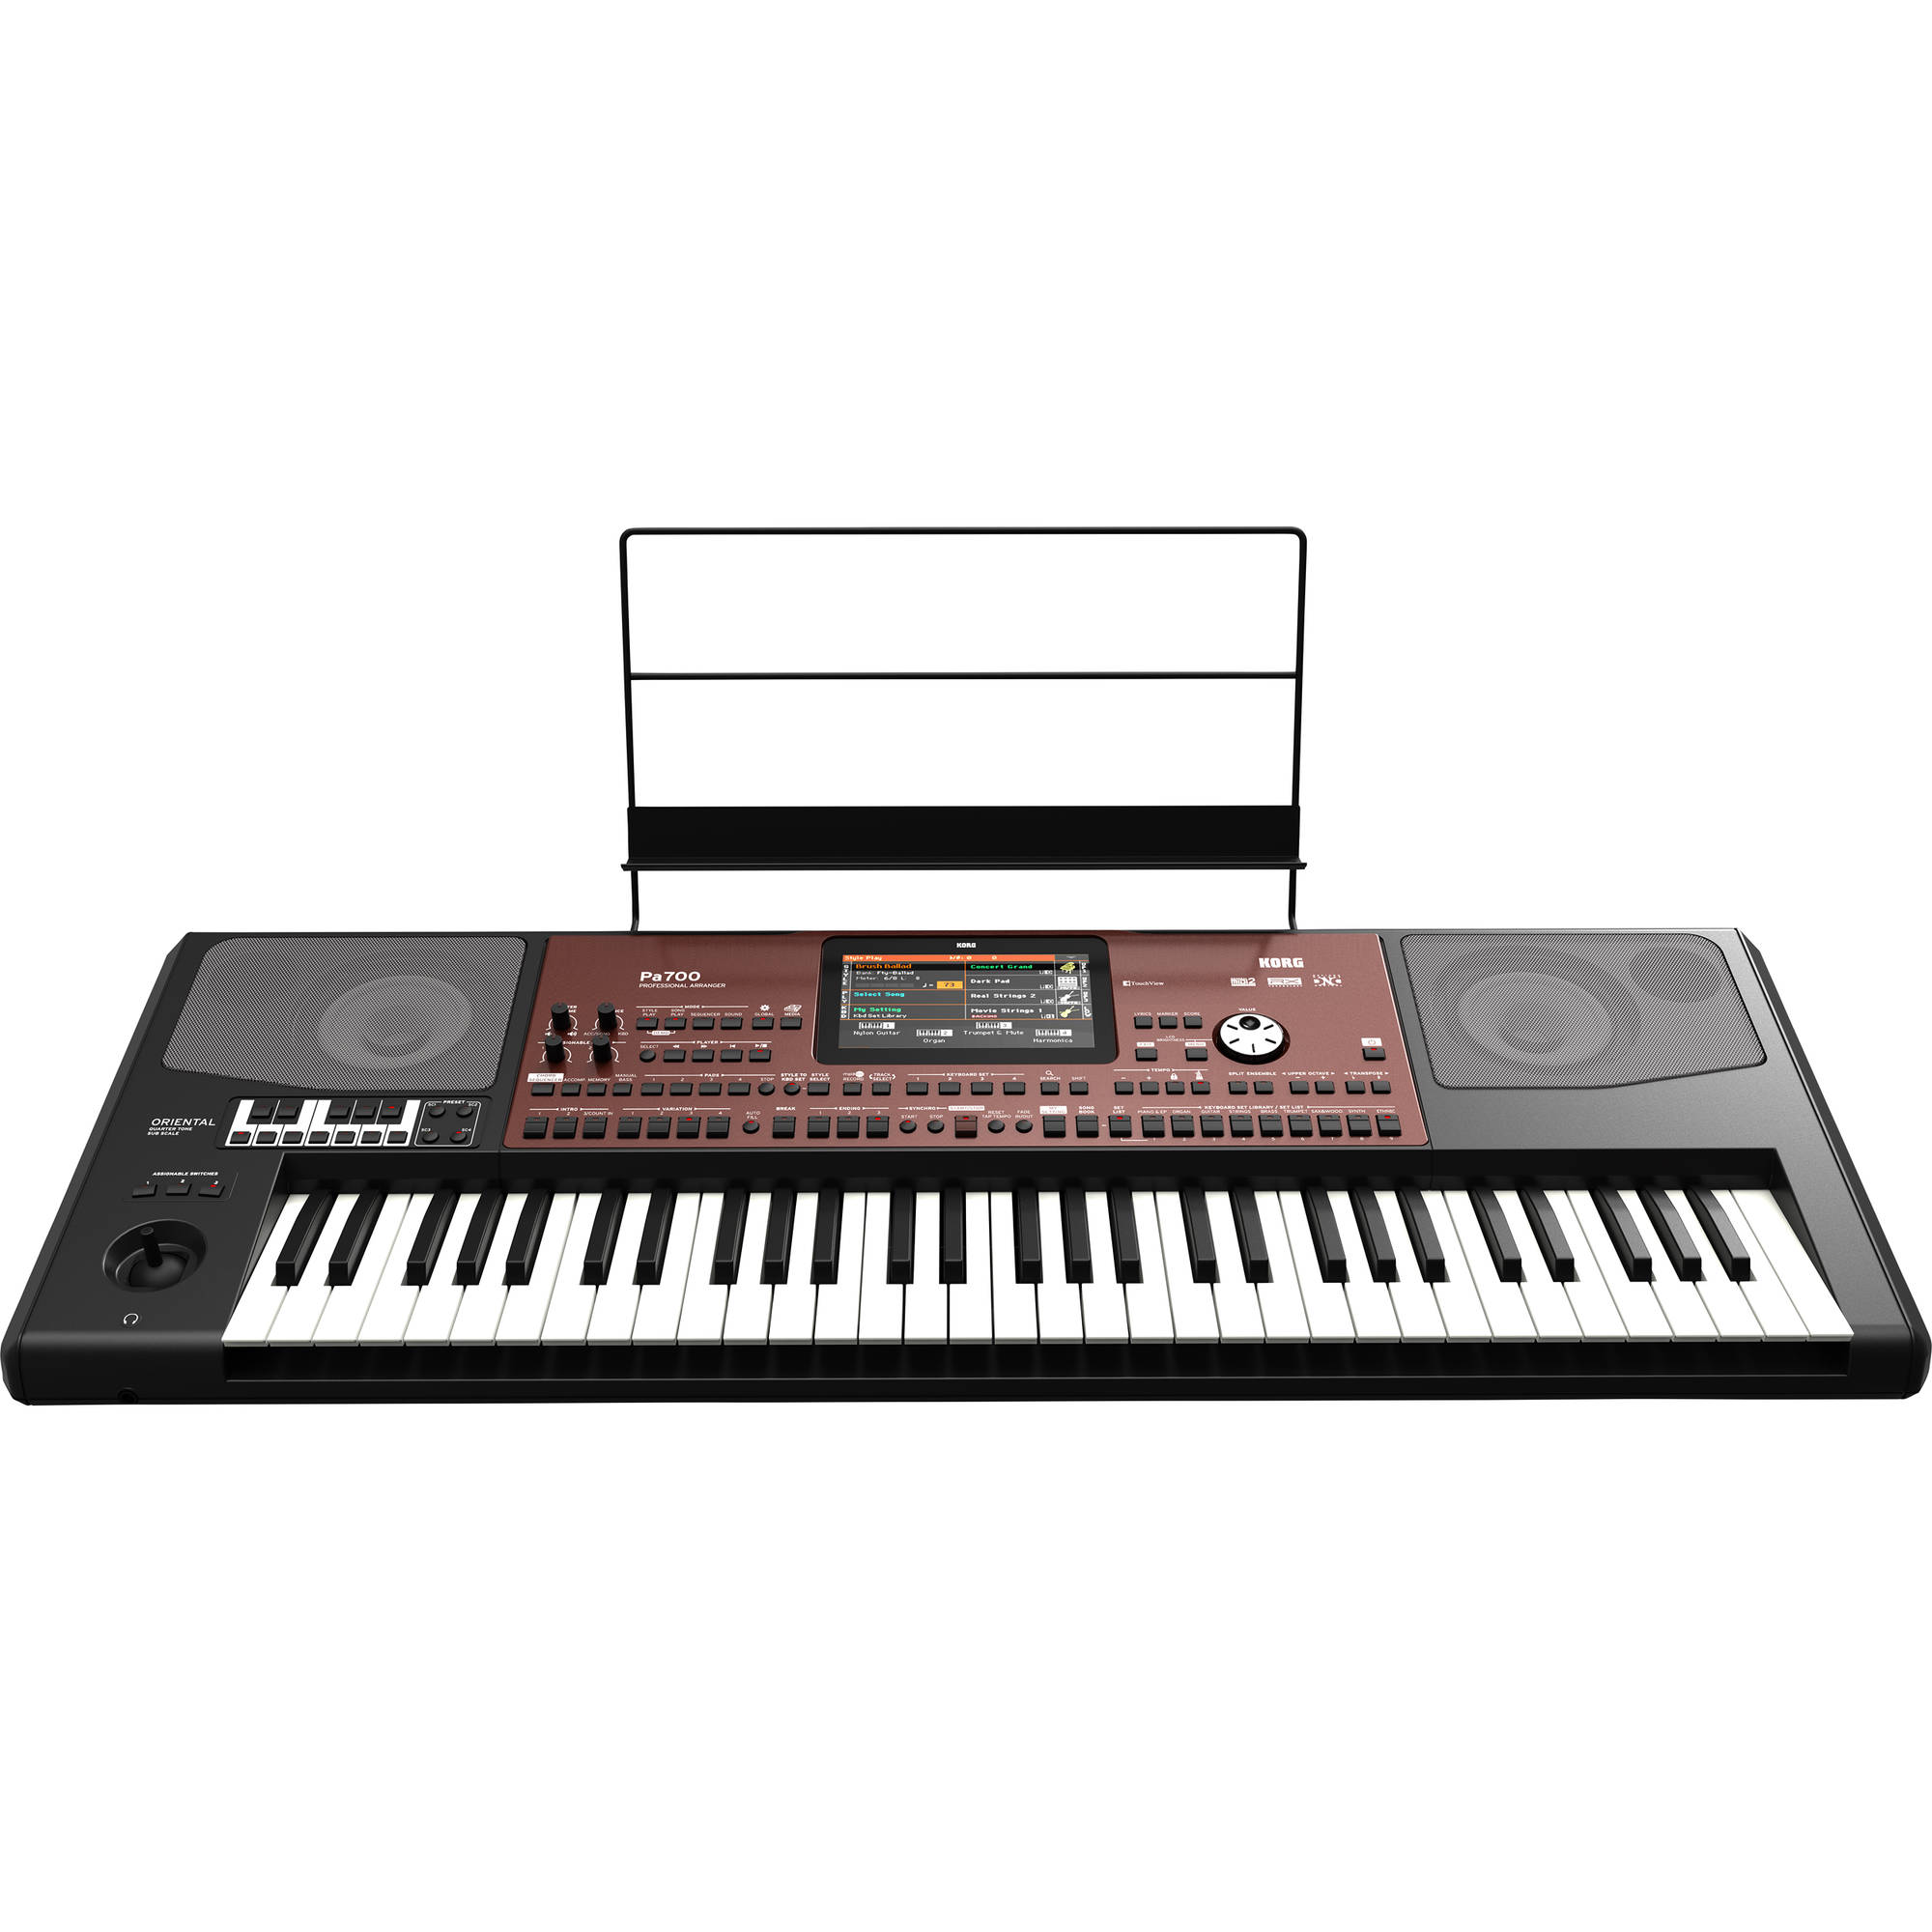 Korg Pa700 ORIENTAL 61-Key Professional Arranger with Touchscreen and  Speakers